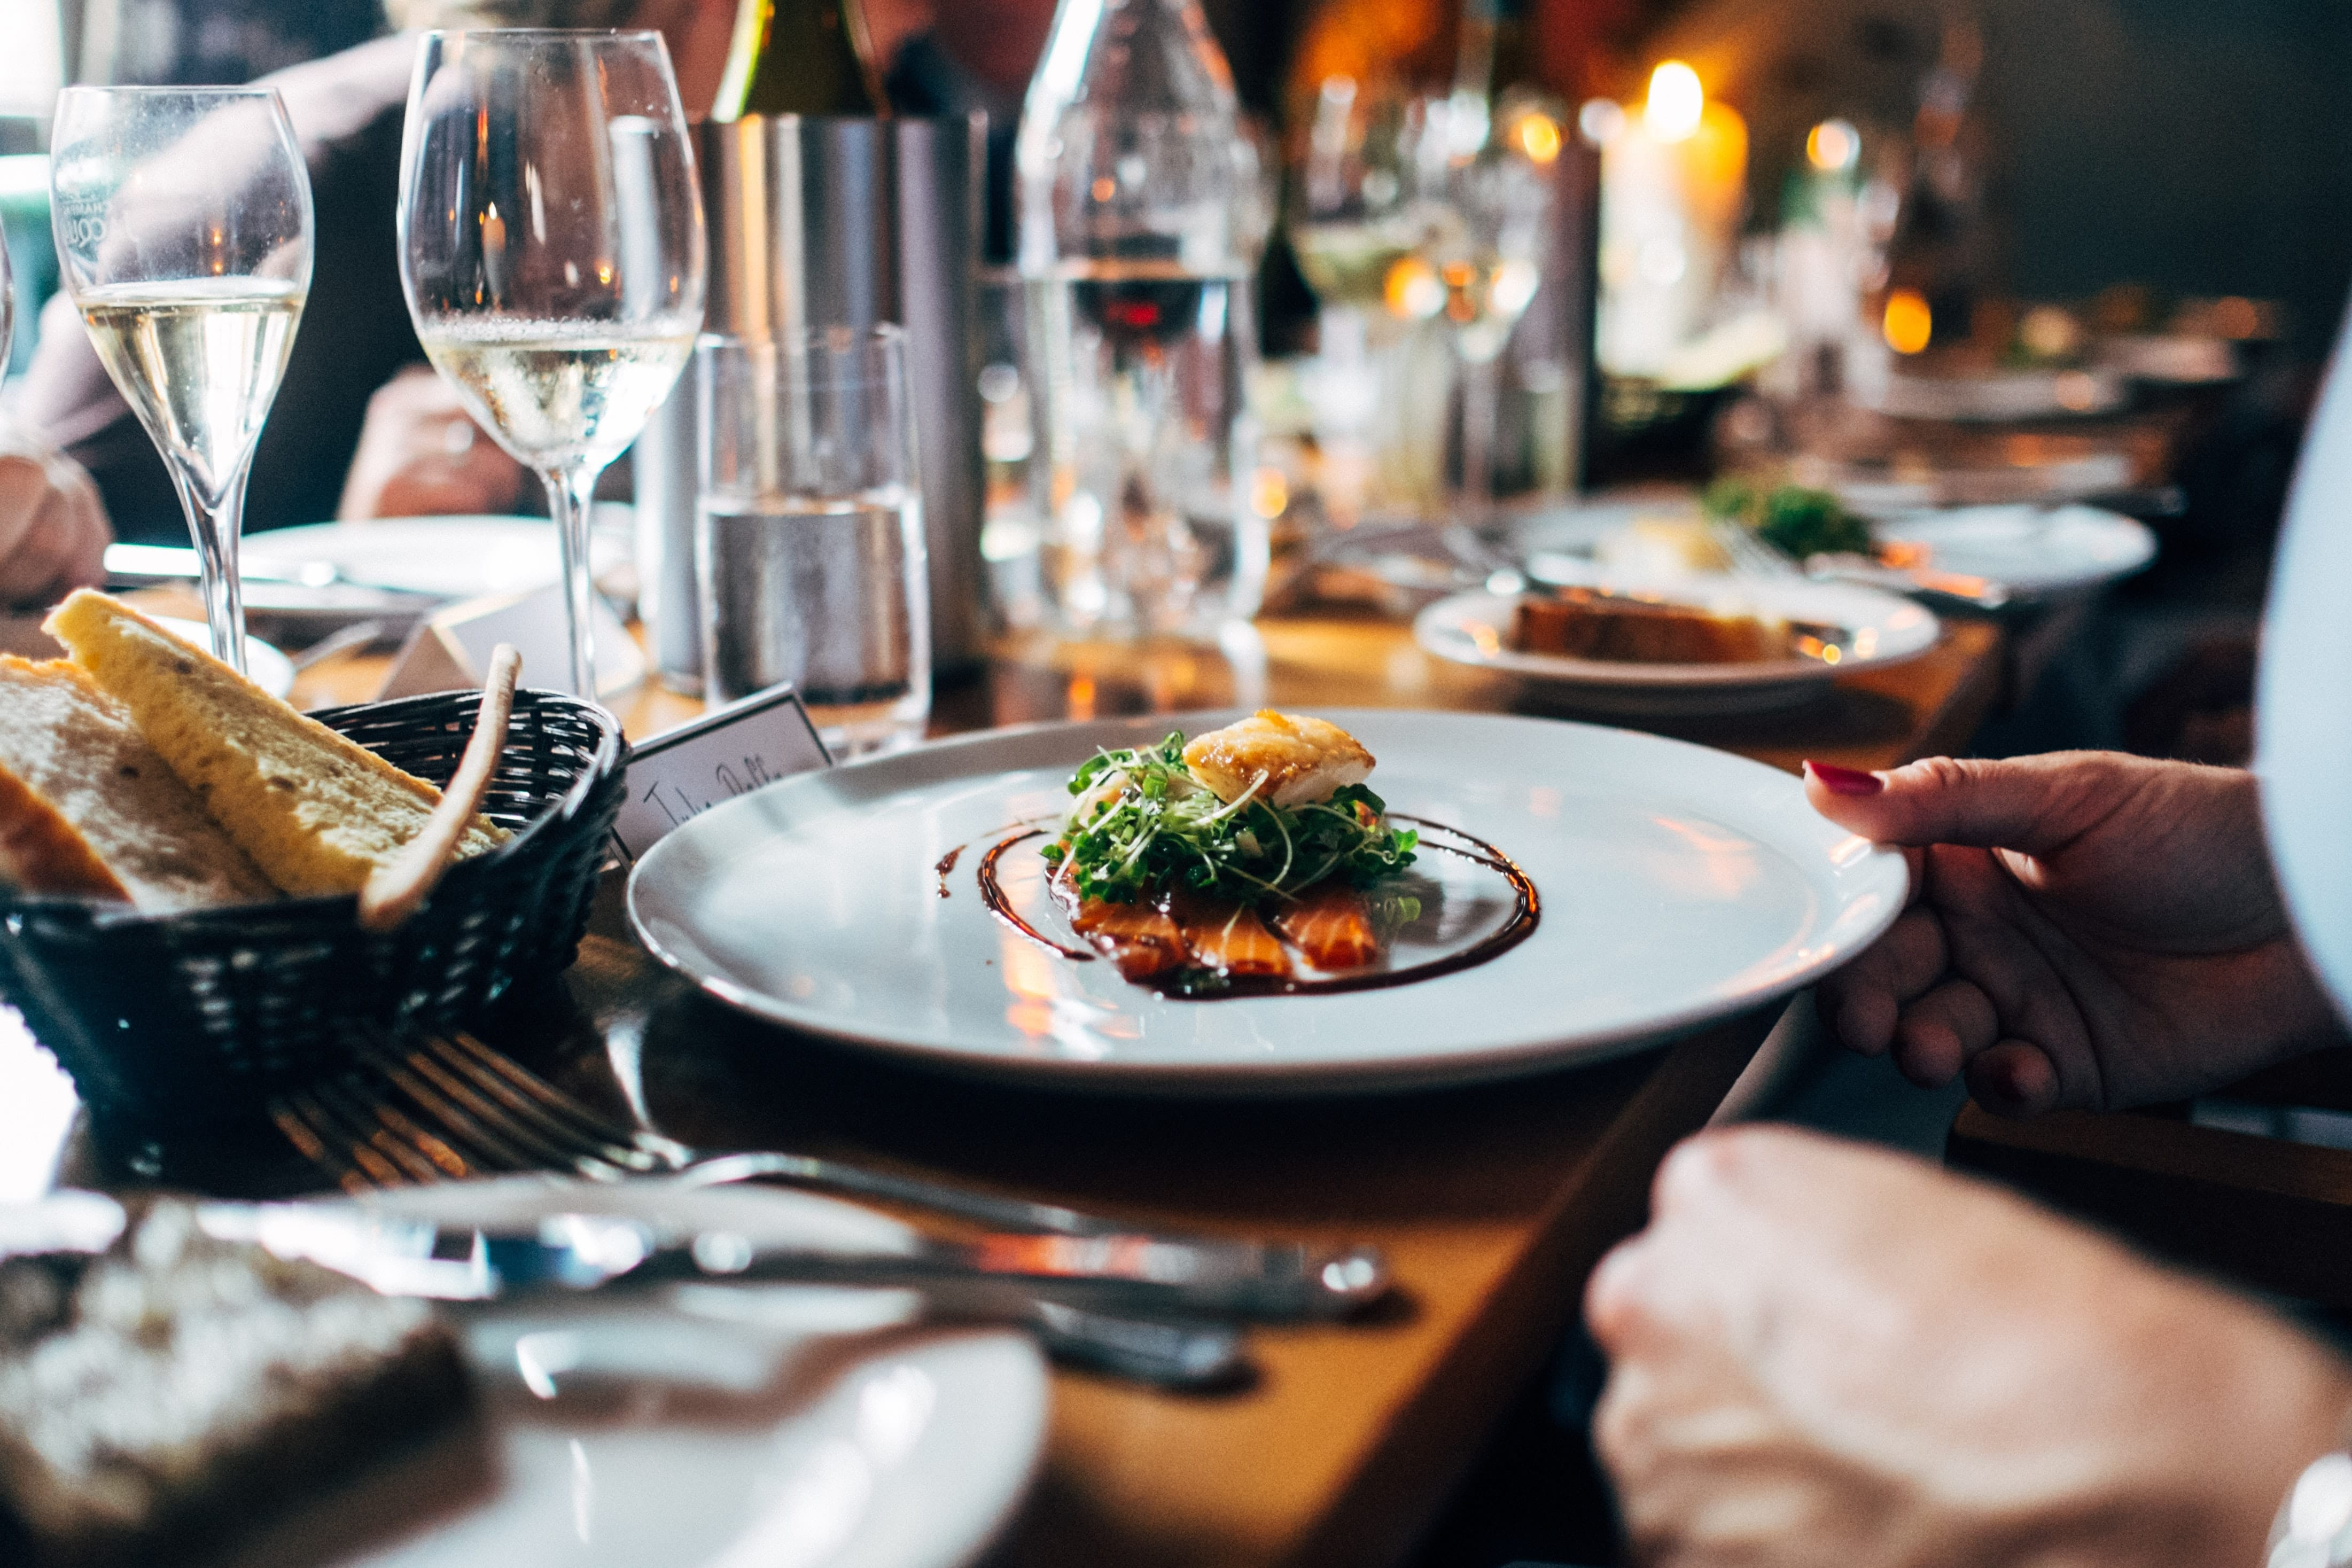 whats in store for the future of restaurants